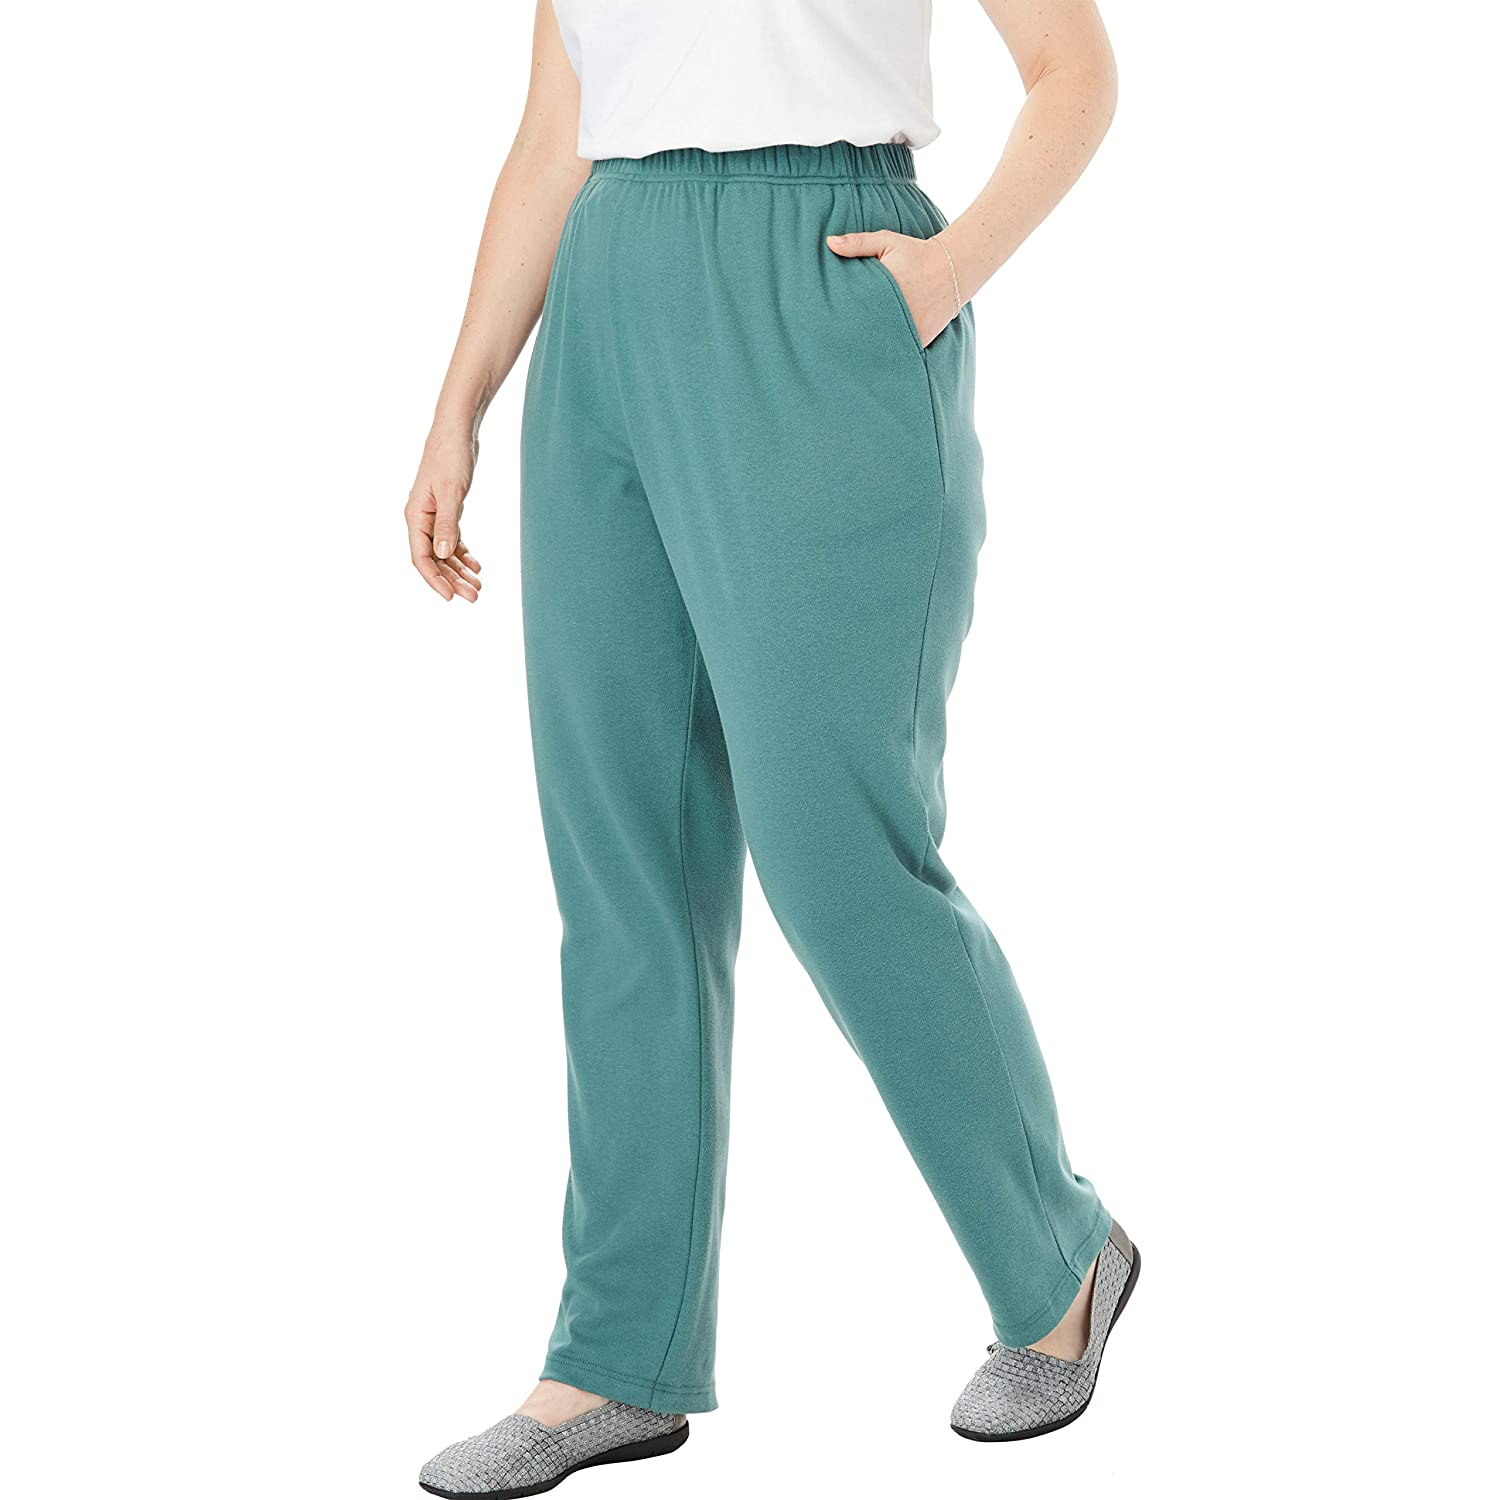 5ad1b3ae10 Woman Within Women's Plus Size Tall 7-Day Knit Straight Leg Pant at Amazon  Women's Clothing store: Tall Women Size Pants